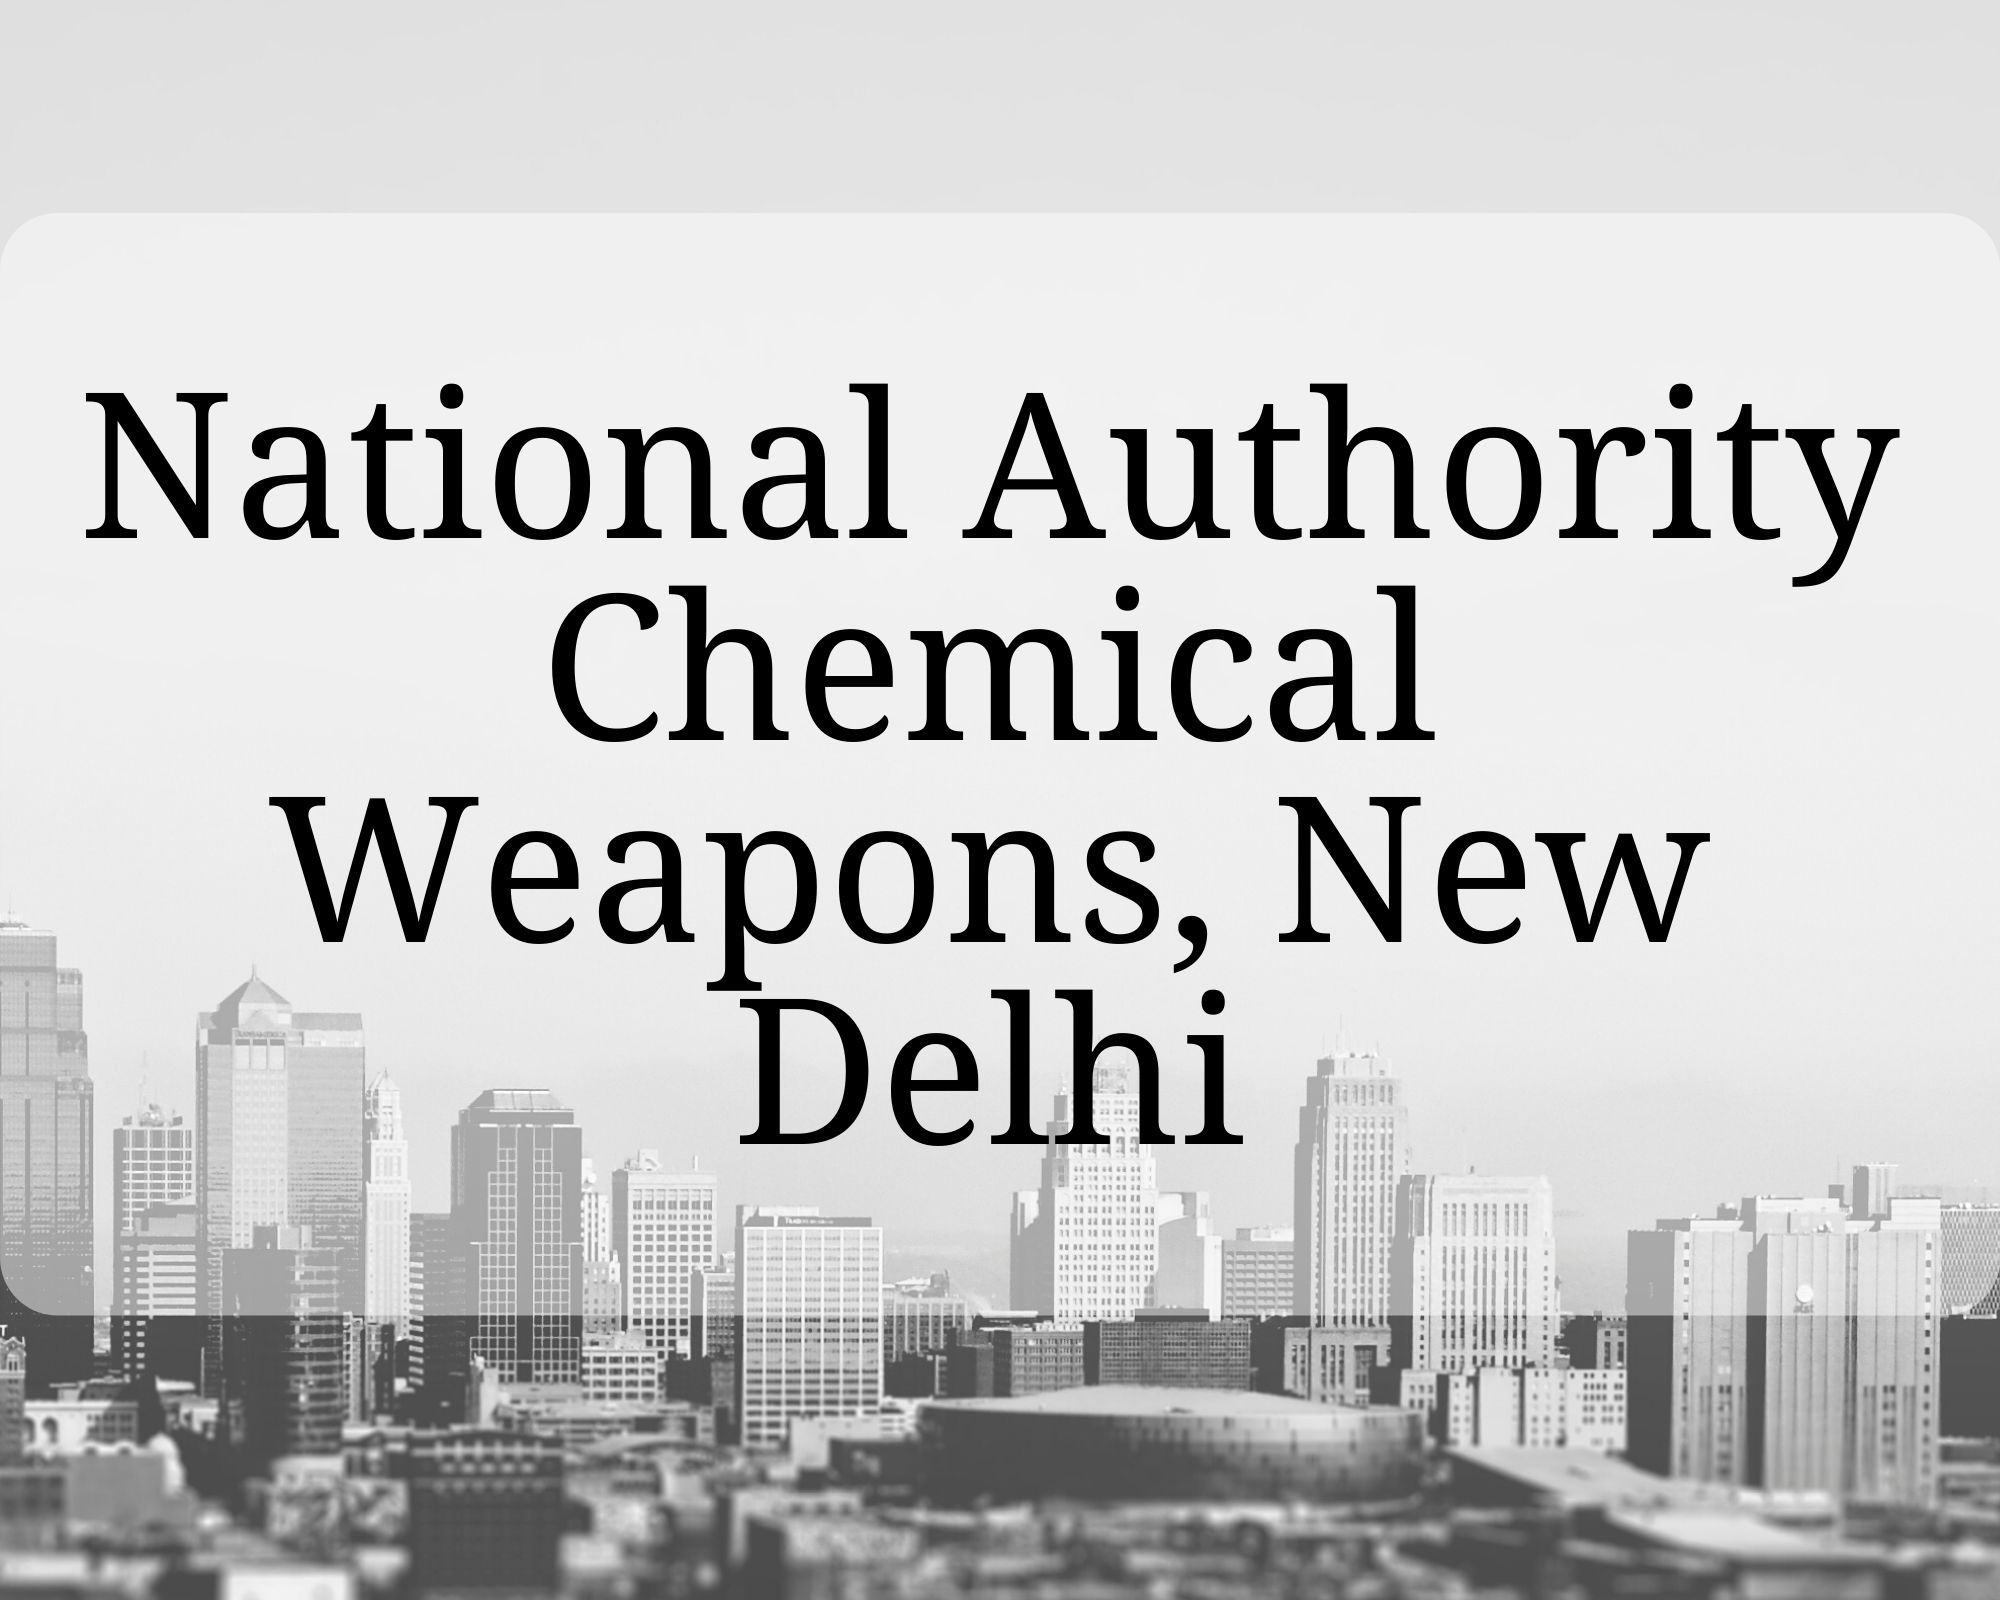 National Authority Chemical Weapons, New Delhi